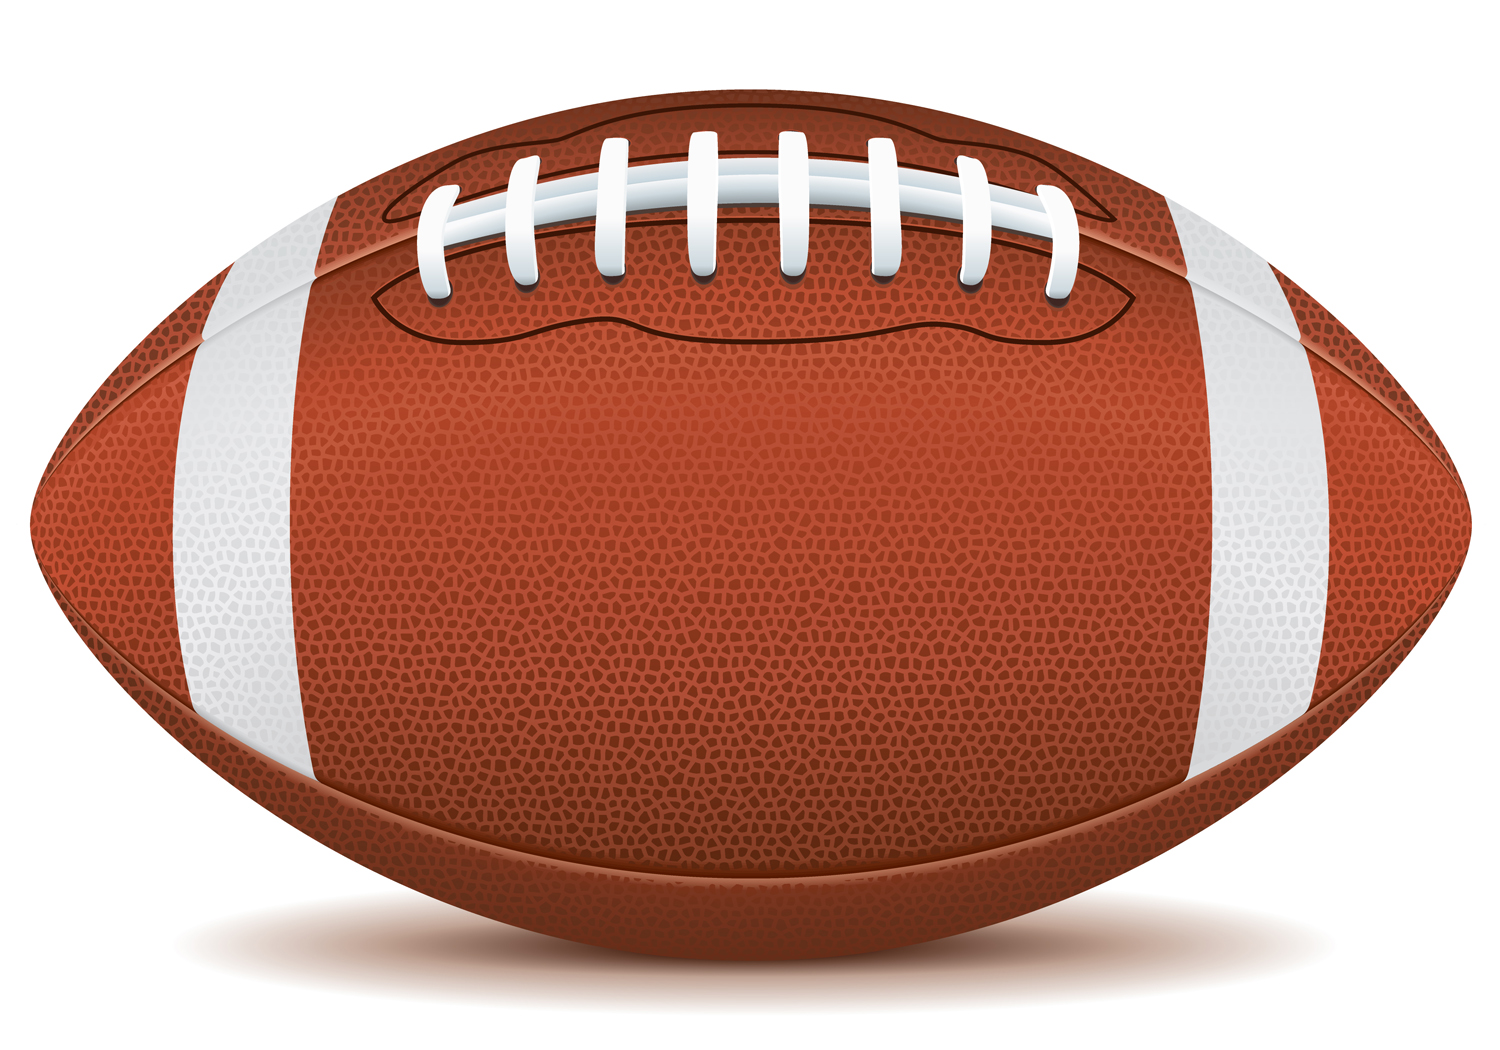 Football clipart transparent background, Picture #20525.